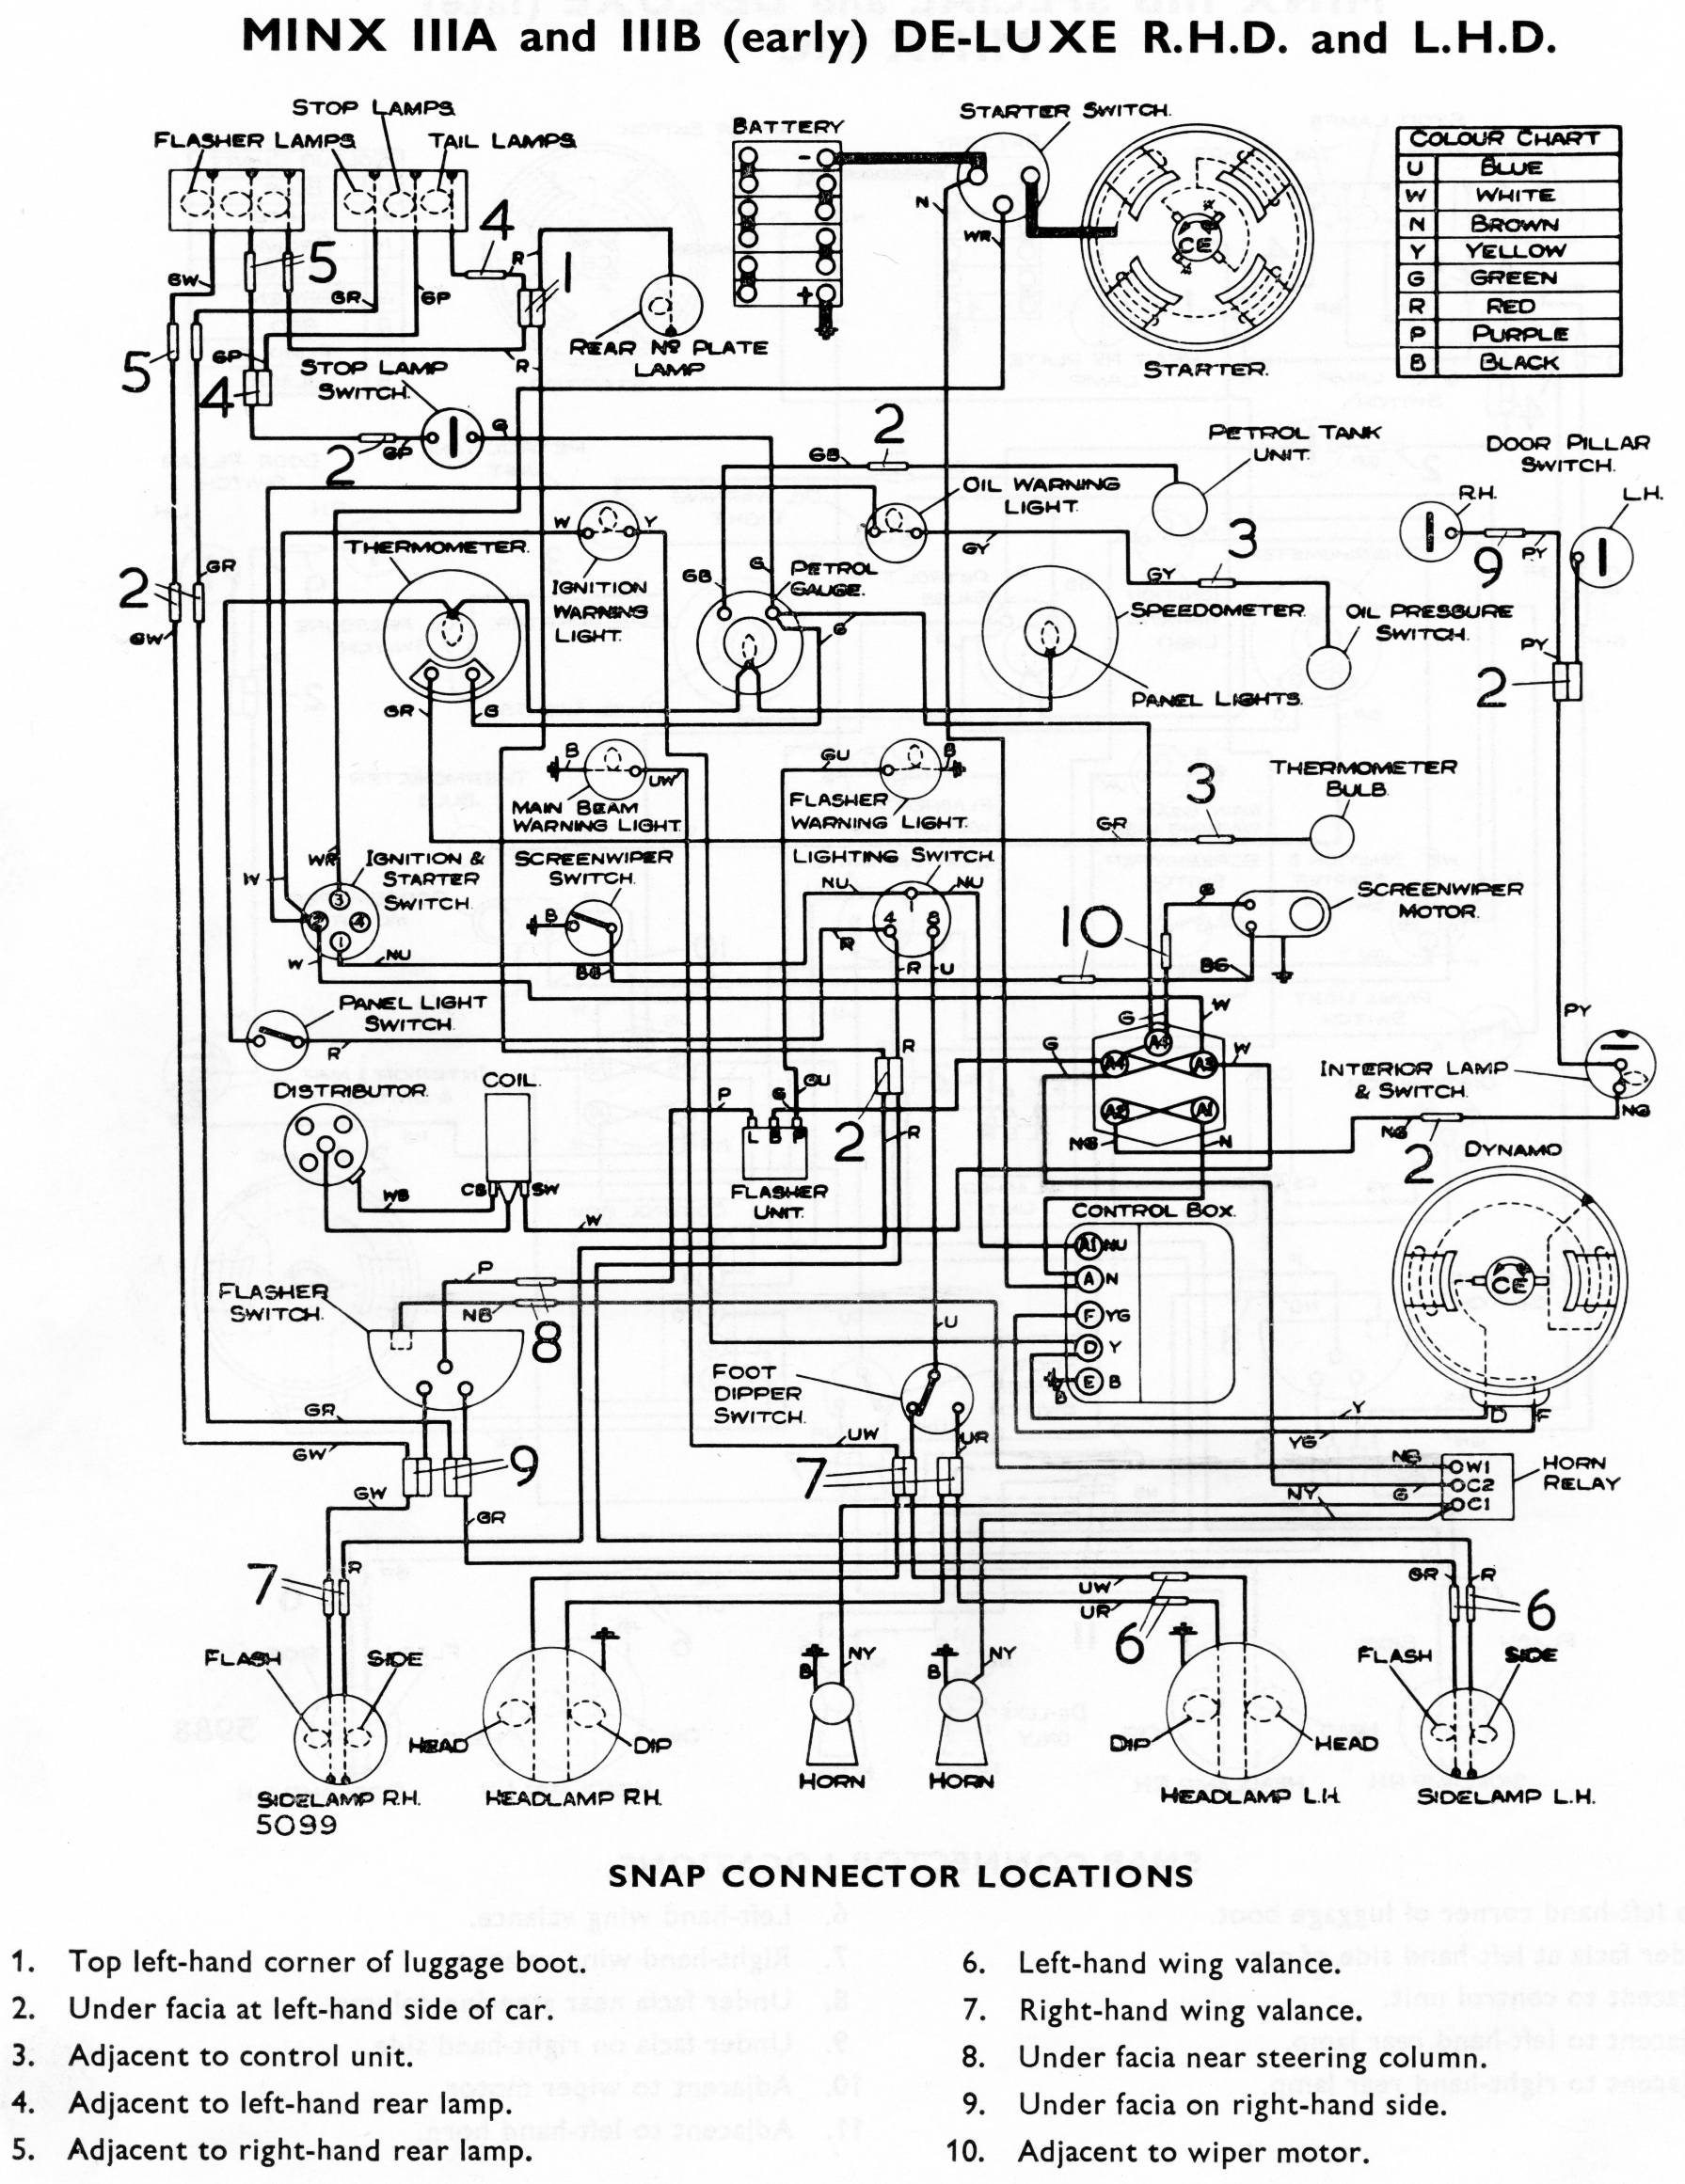 Hillman Car Club Of South Australia Wiring Diagrams